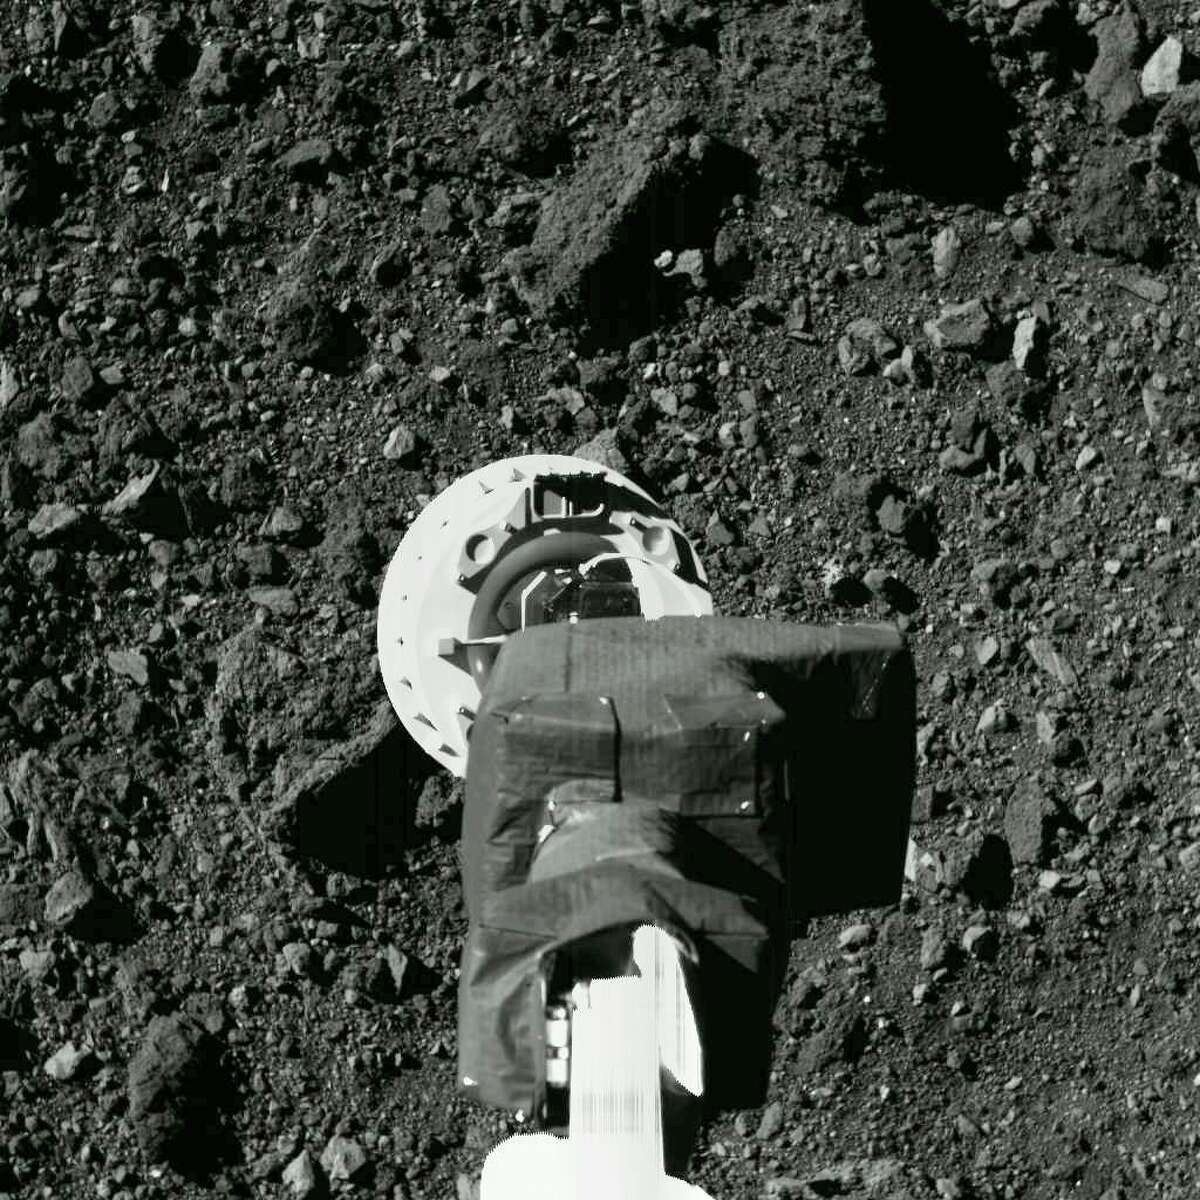 """This Aug. 11, 2020 photo shows the sampling arm of the OSIRIS-REx spacecraft during a rehearsal for an approach to the """"Nightingale"""" sample site on the surface of the asteroid Bennu. After almost two years circling the ancient asteroid, OSIRIS-REx will attempt to descend to the treacherous, boulder-packed surface and snatch a handful of rubble on Tuesday, Oct. 20, 2020. (NASA/Goddard/University of Arizona via AP)"""